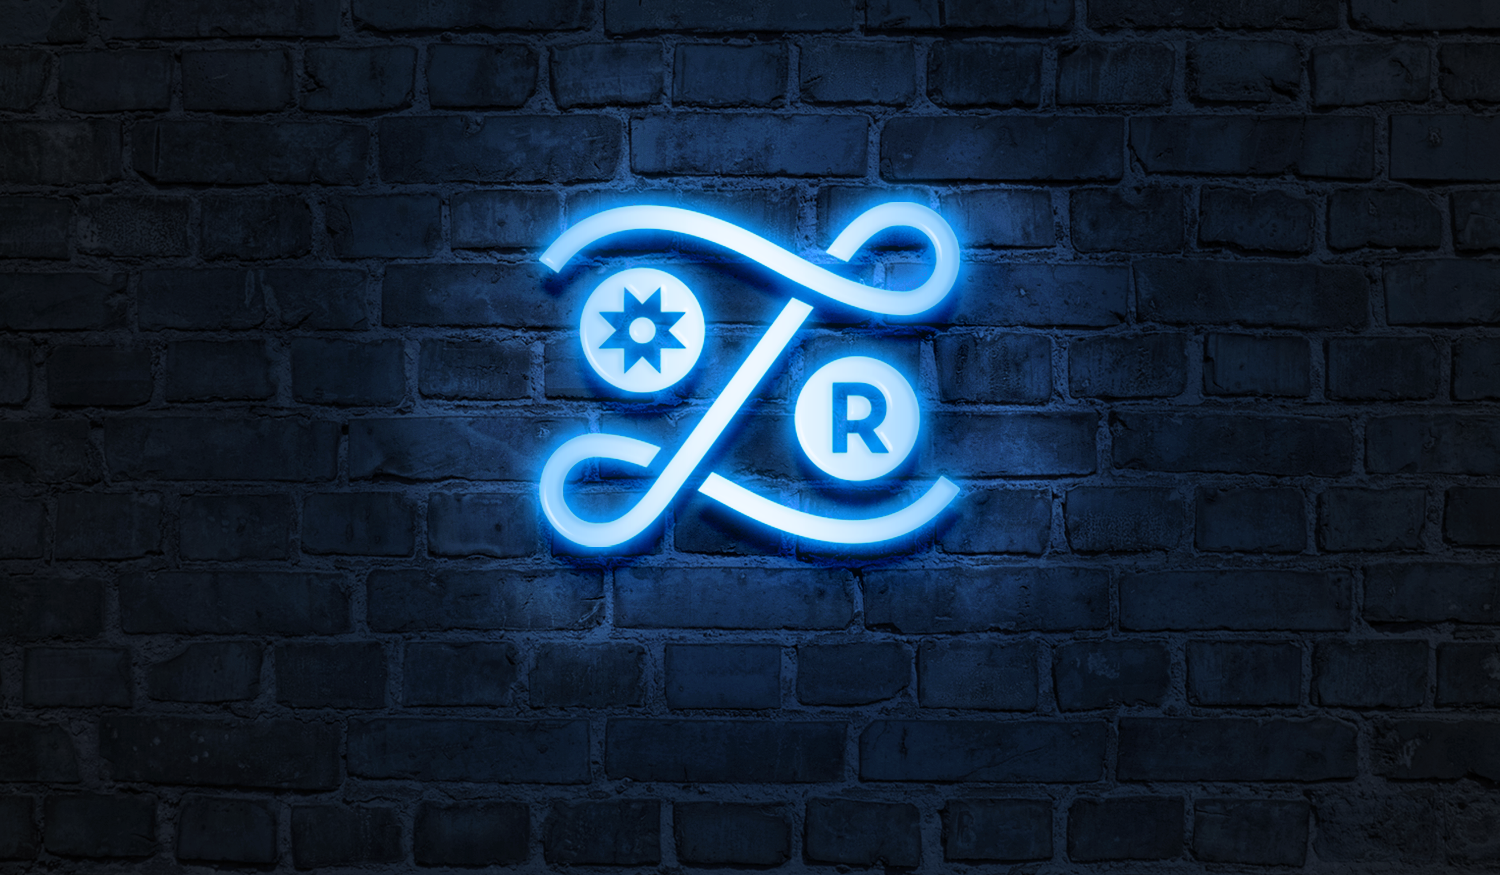 Liaison Room visual identity neon sign